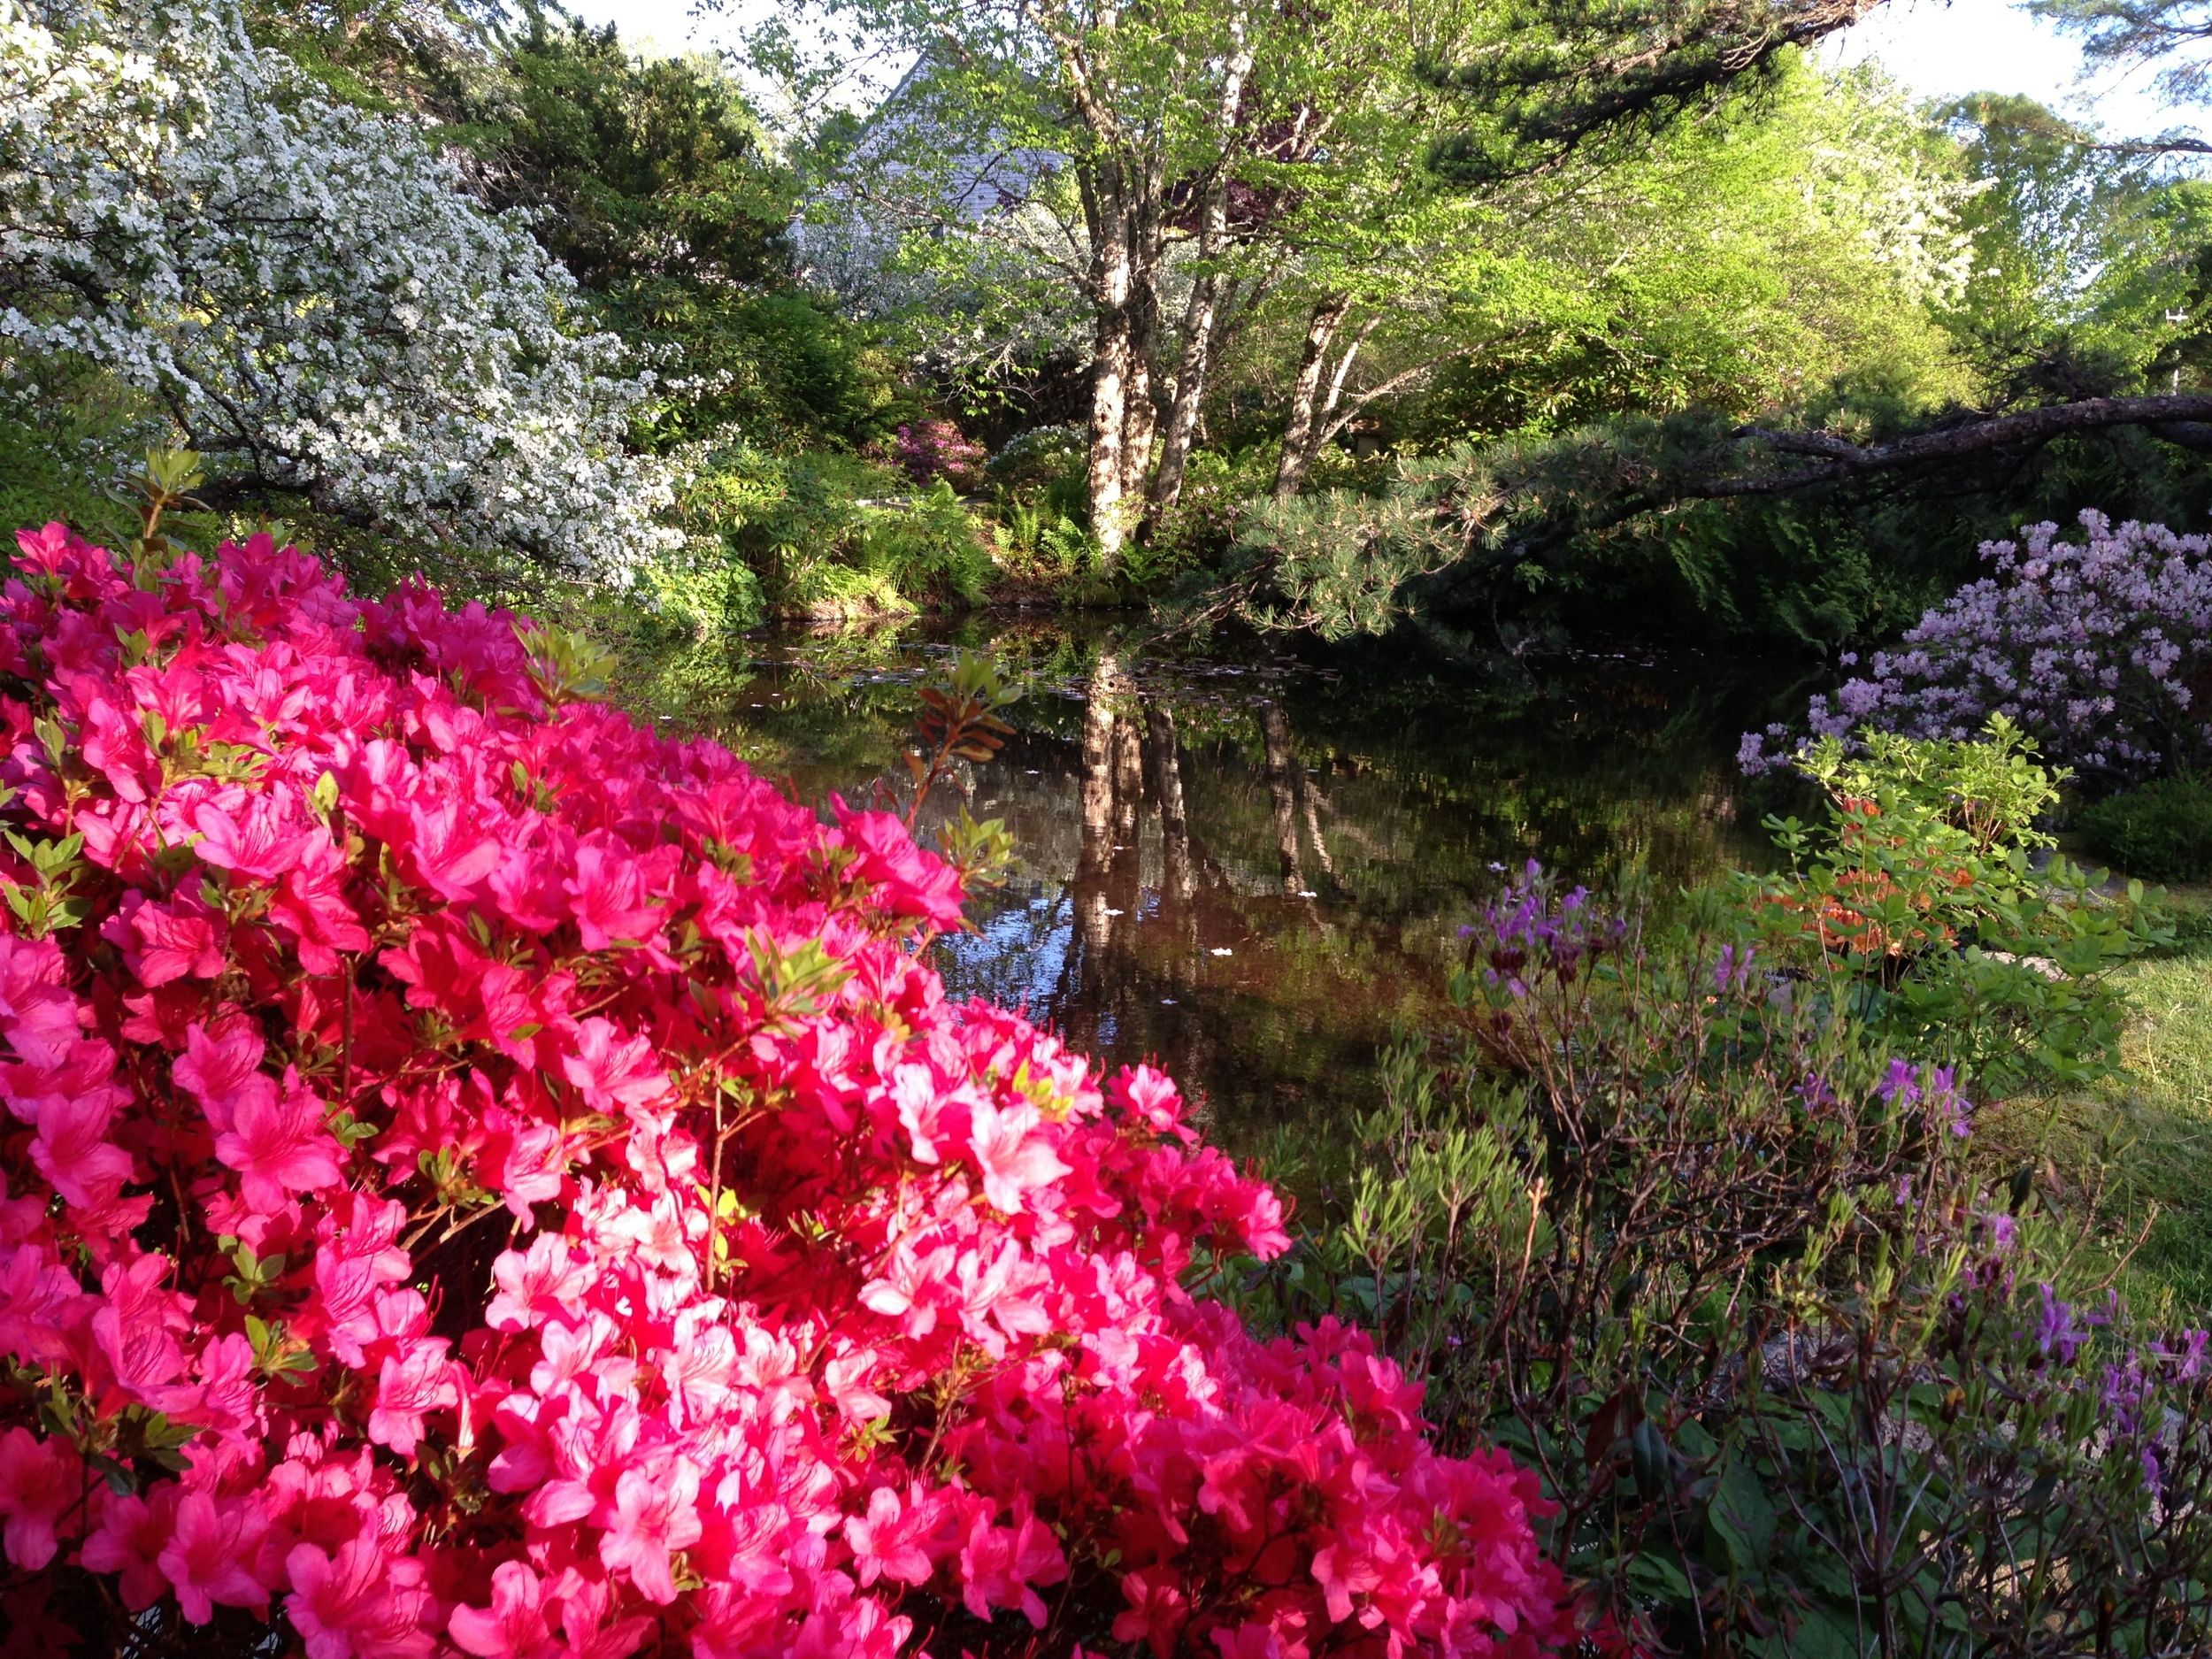 The Asticou is one of four stunning gardens within a few miles of The Naturalist's Notebook.